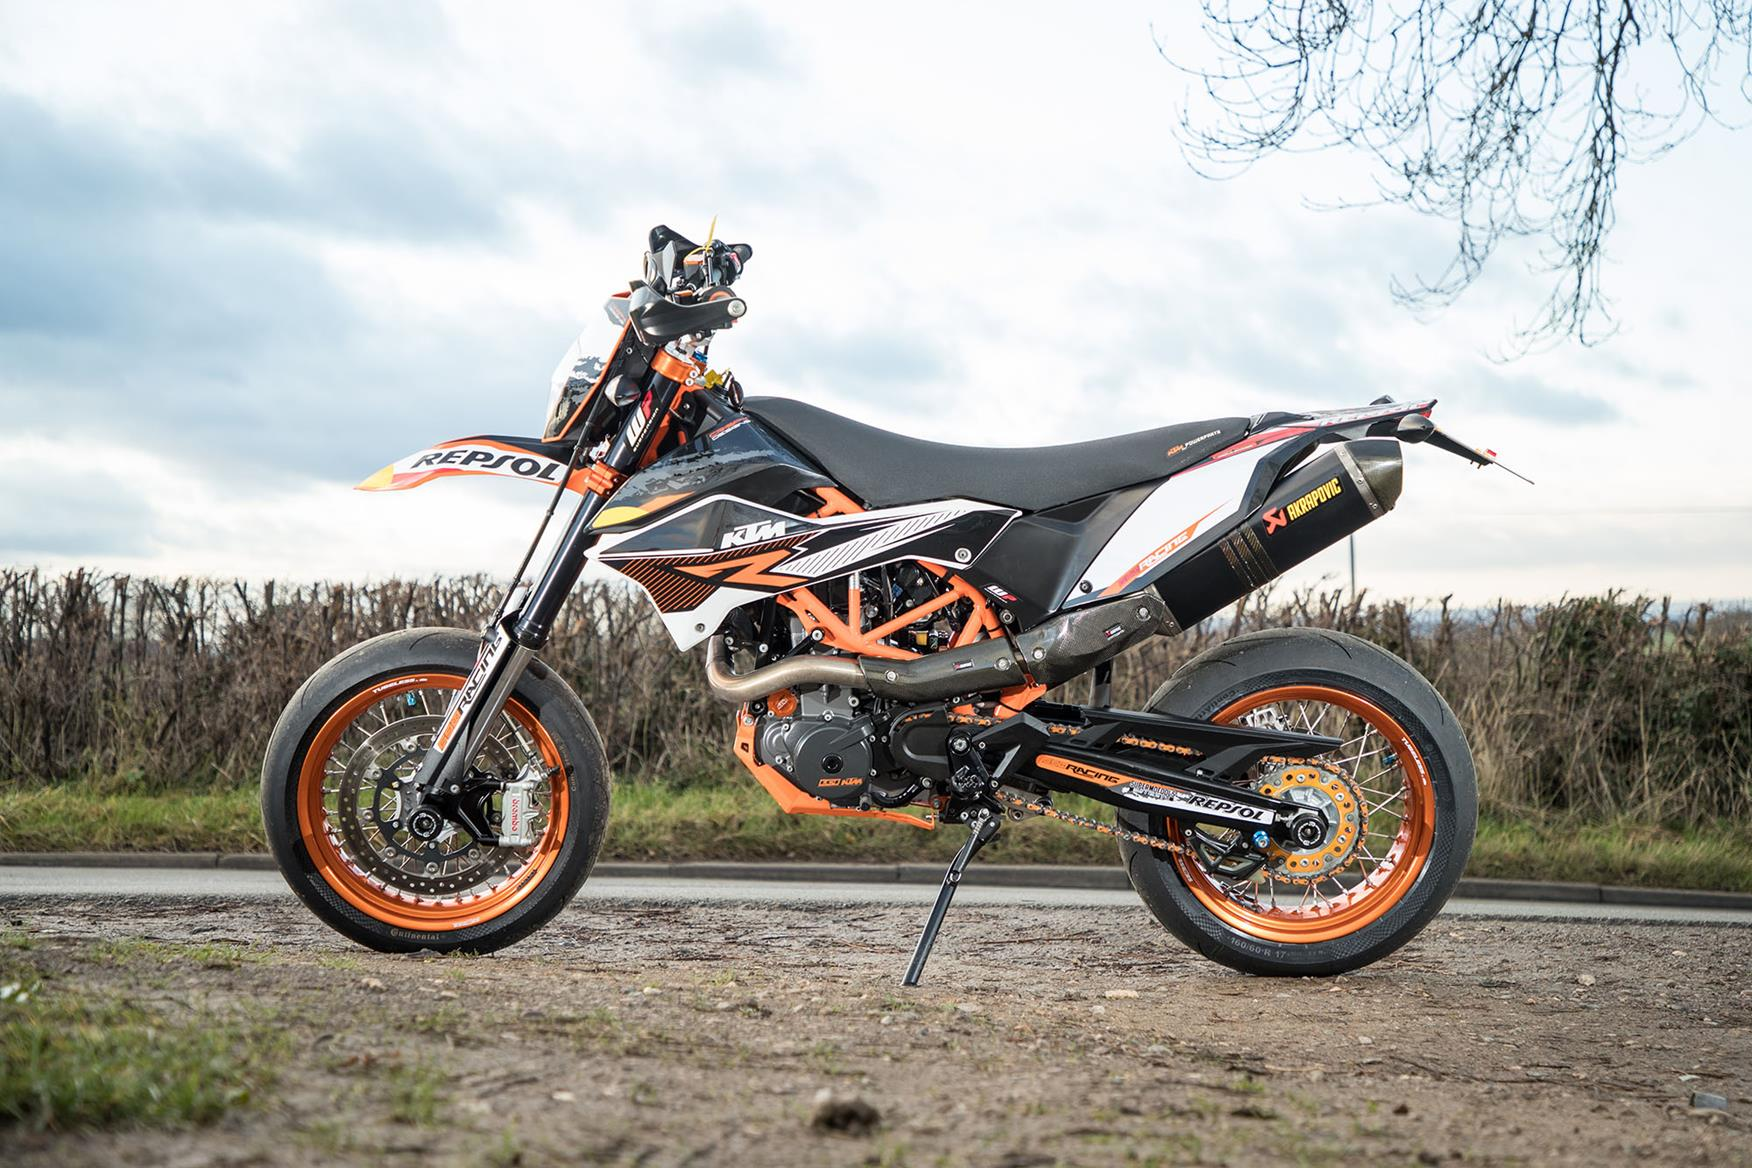 KTM 690 SMC R with Akrapovic exhaust